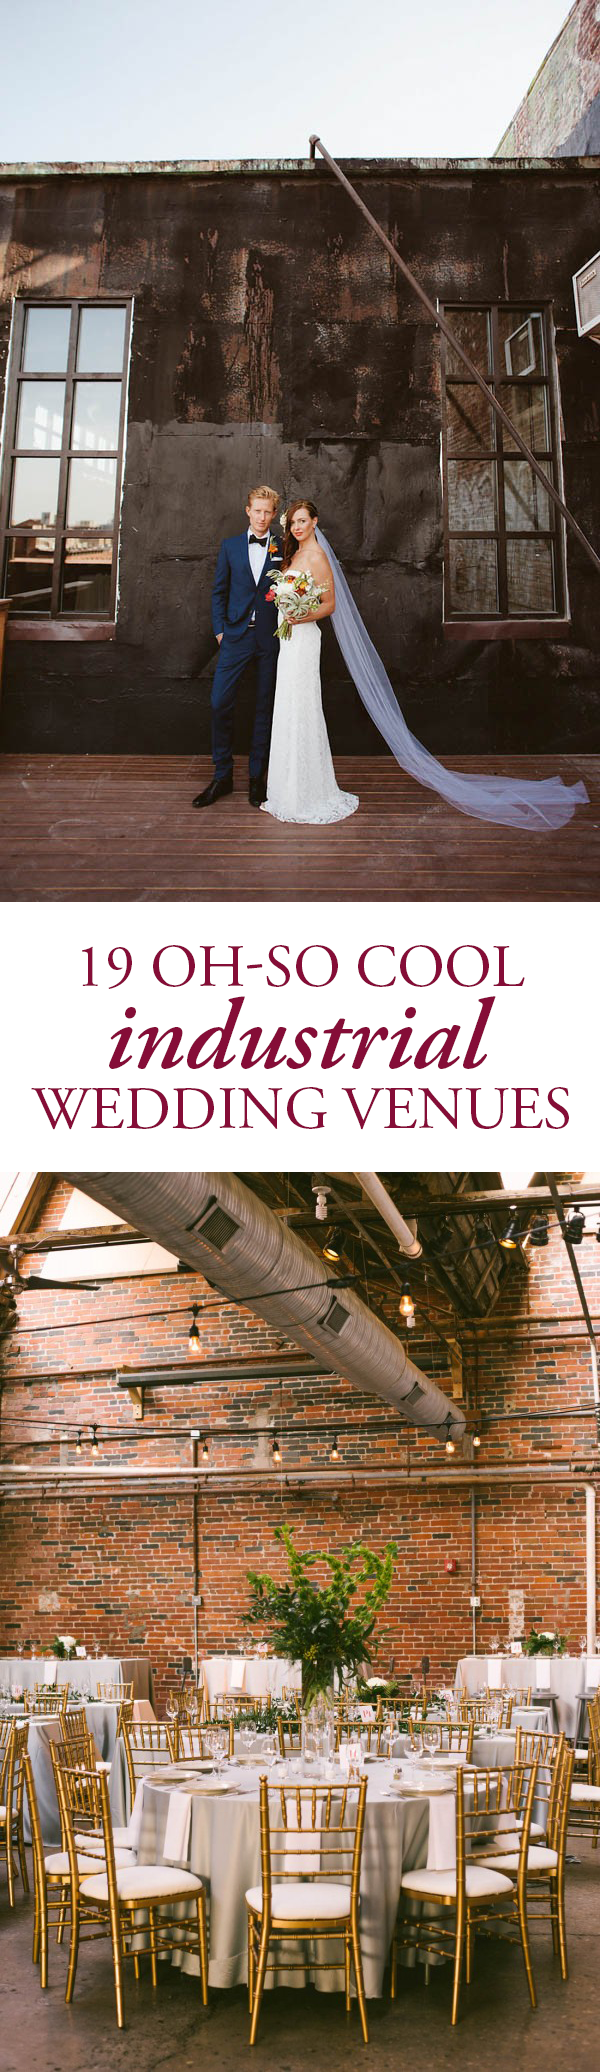 Industrial Wedding Venues Are Beloved For Their Pared Down Look Which Lends Itself To Even More Beautiful Styling Often Accompanied By Exposed Brick Walls